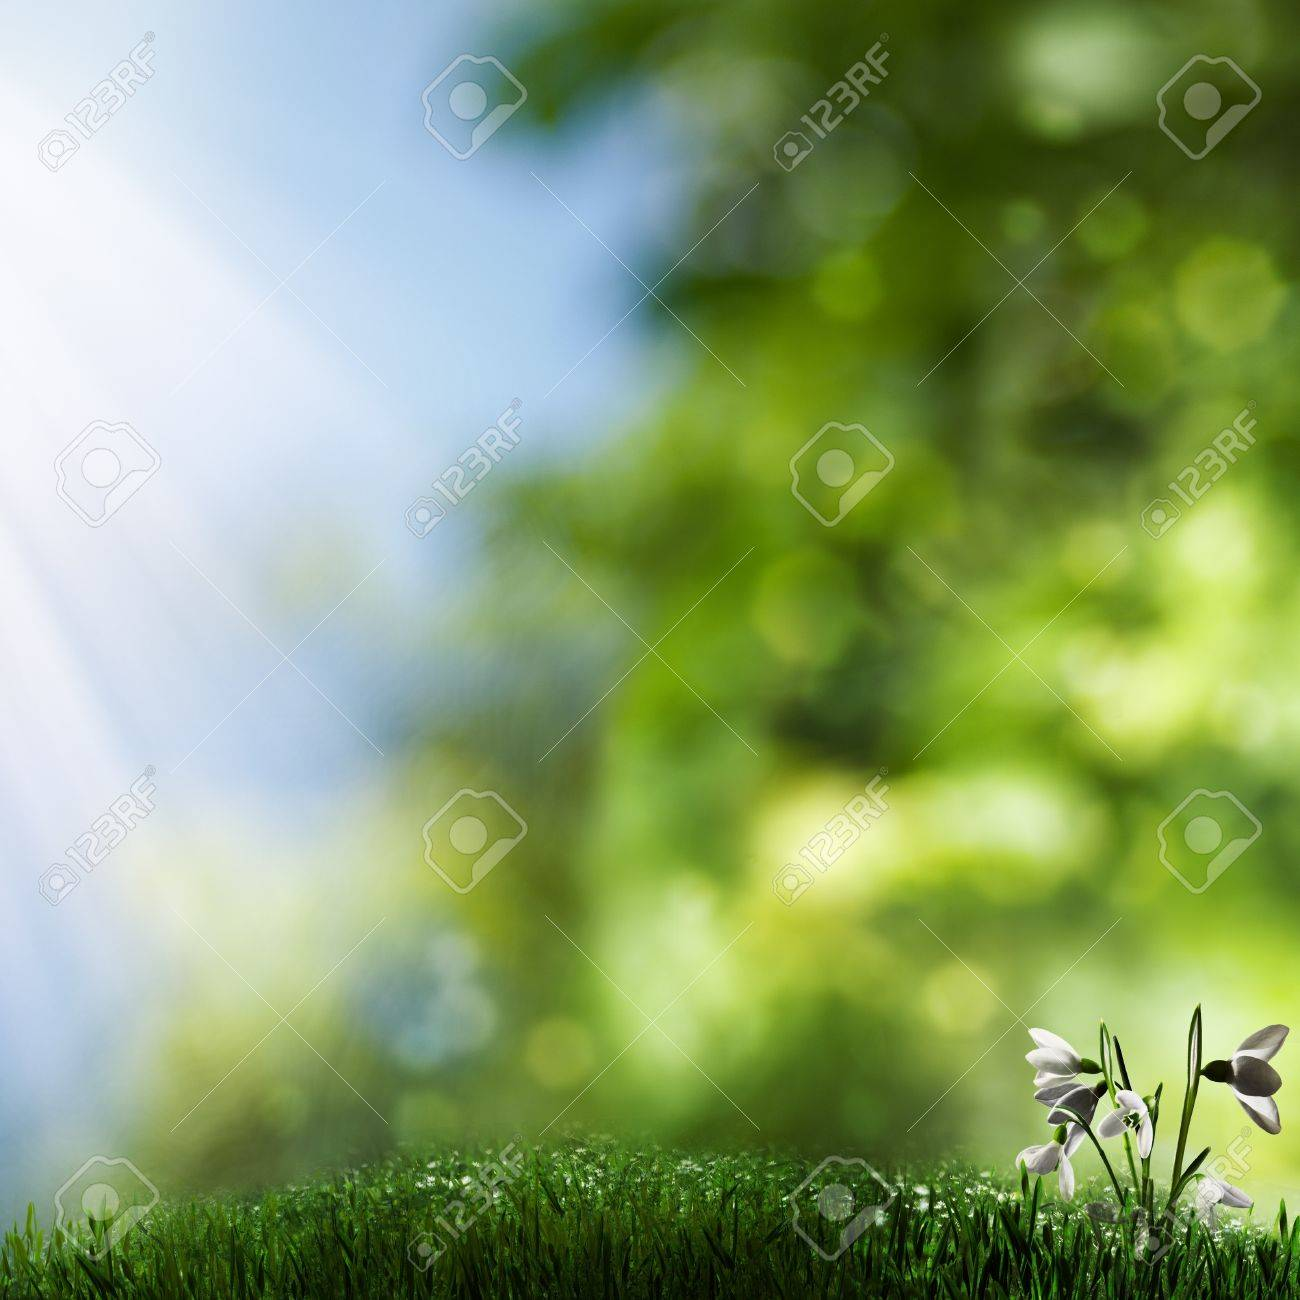 Misty natural backgrounds with grass and beauty flowers Stock Photo - 15071182